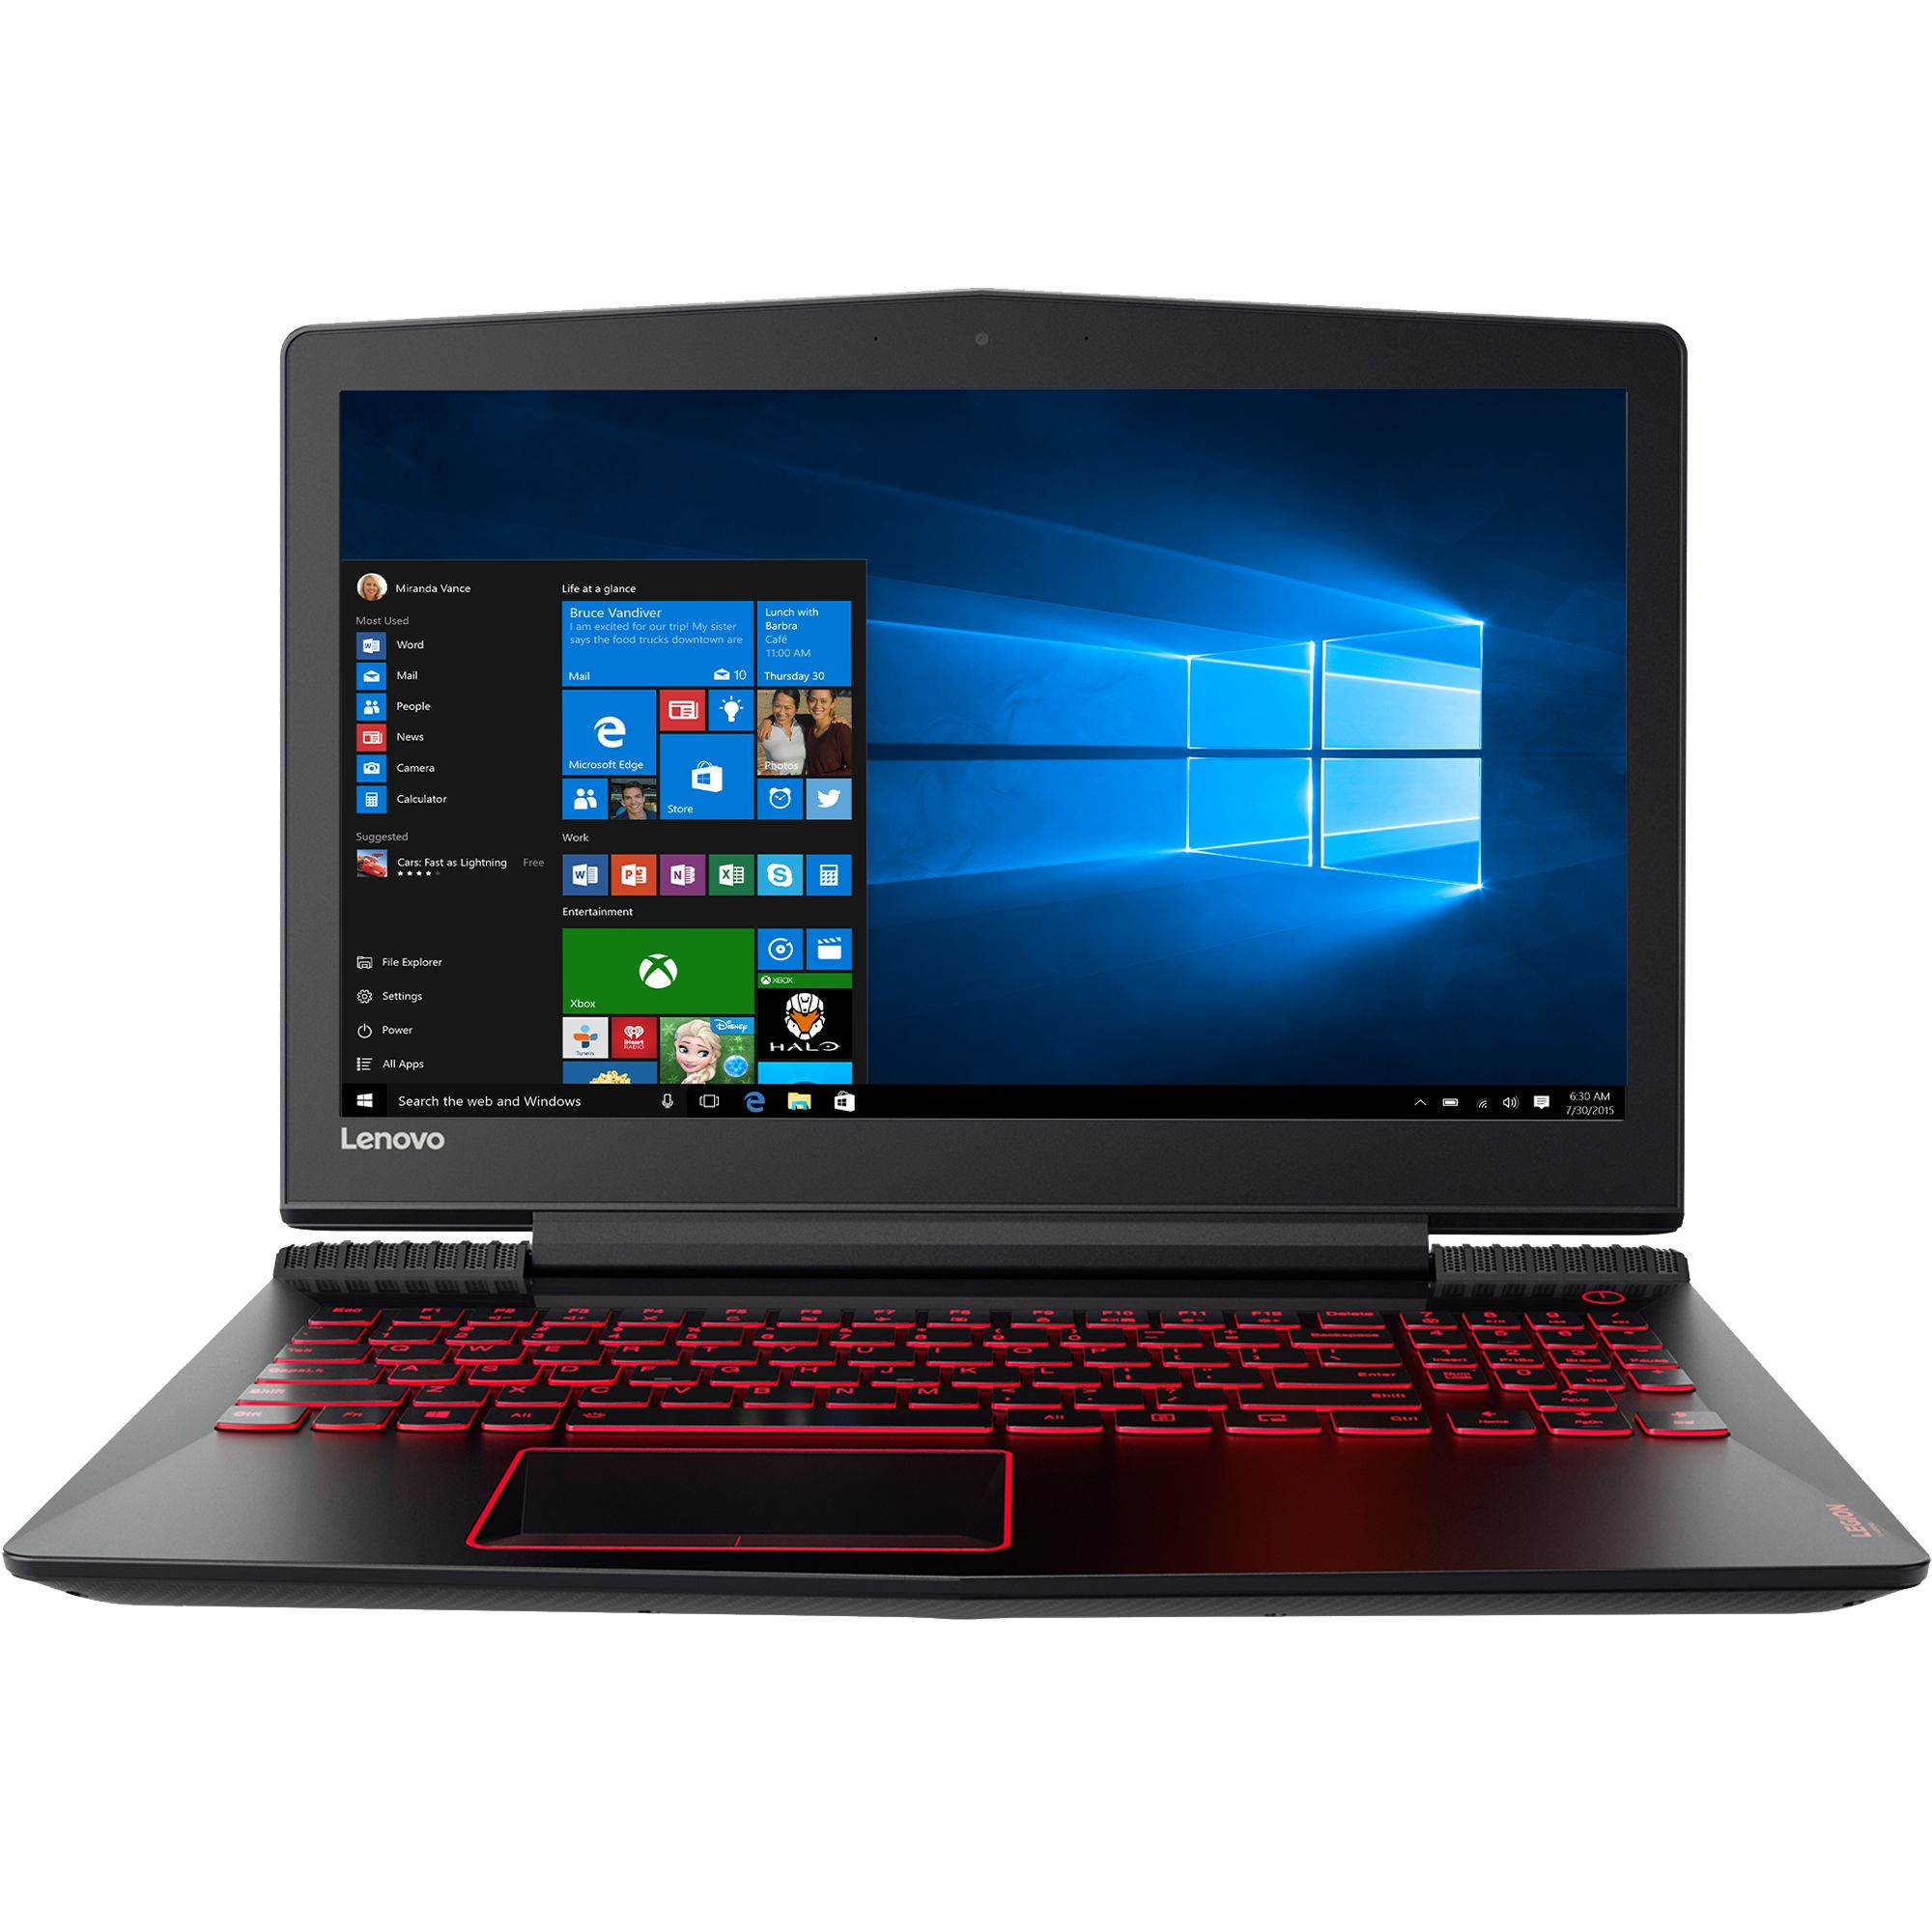 Notebook Lenovo Legion Y520 15.6 Full HD Intel Core i5-7300HQ GTX 1050 Ti-4GB RAM 8GB HDD 1TB FreeDOS